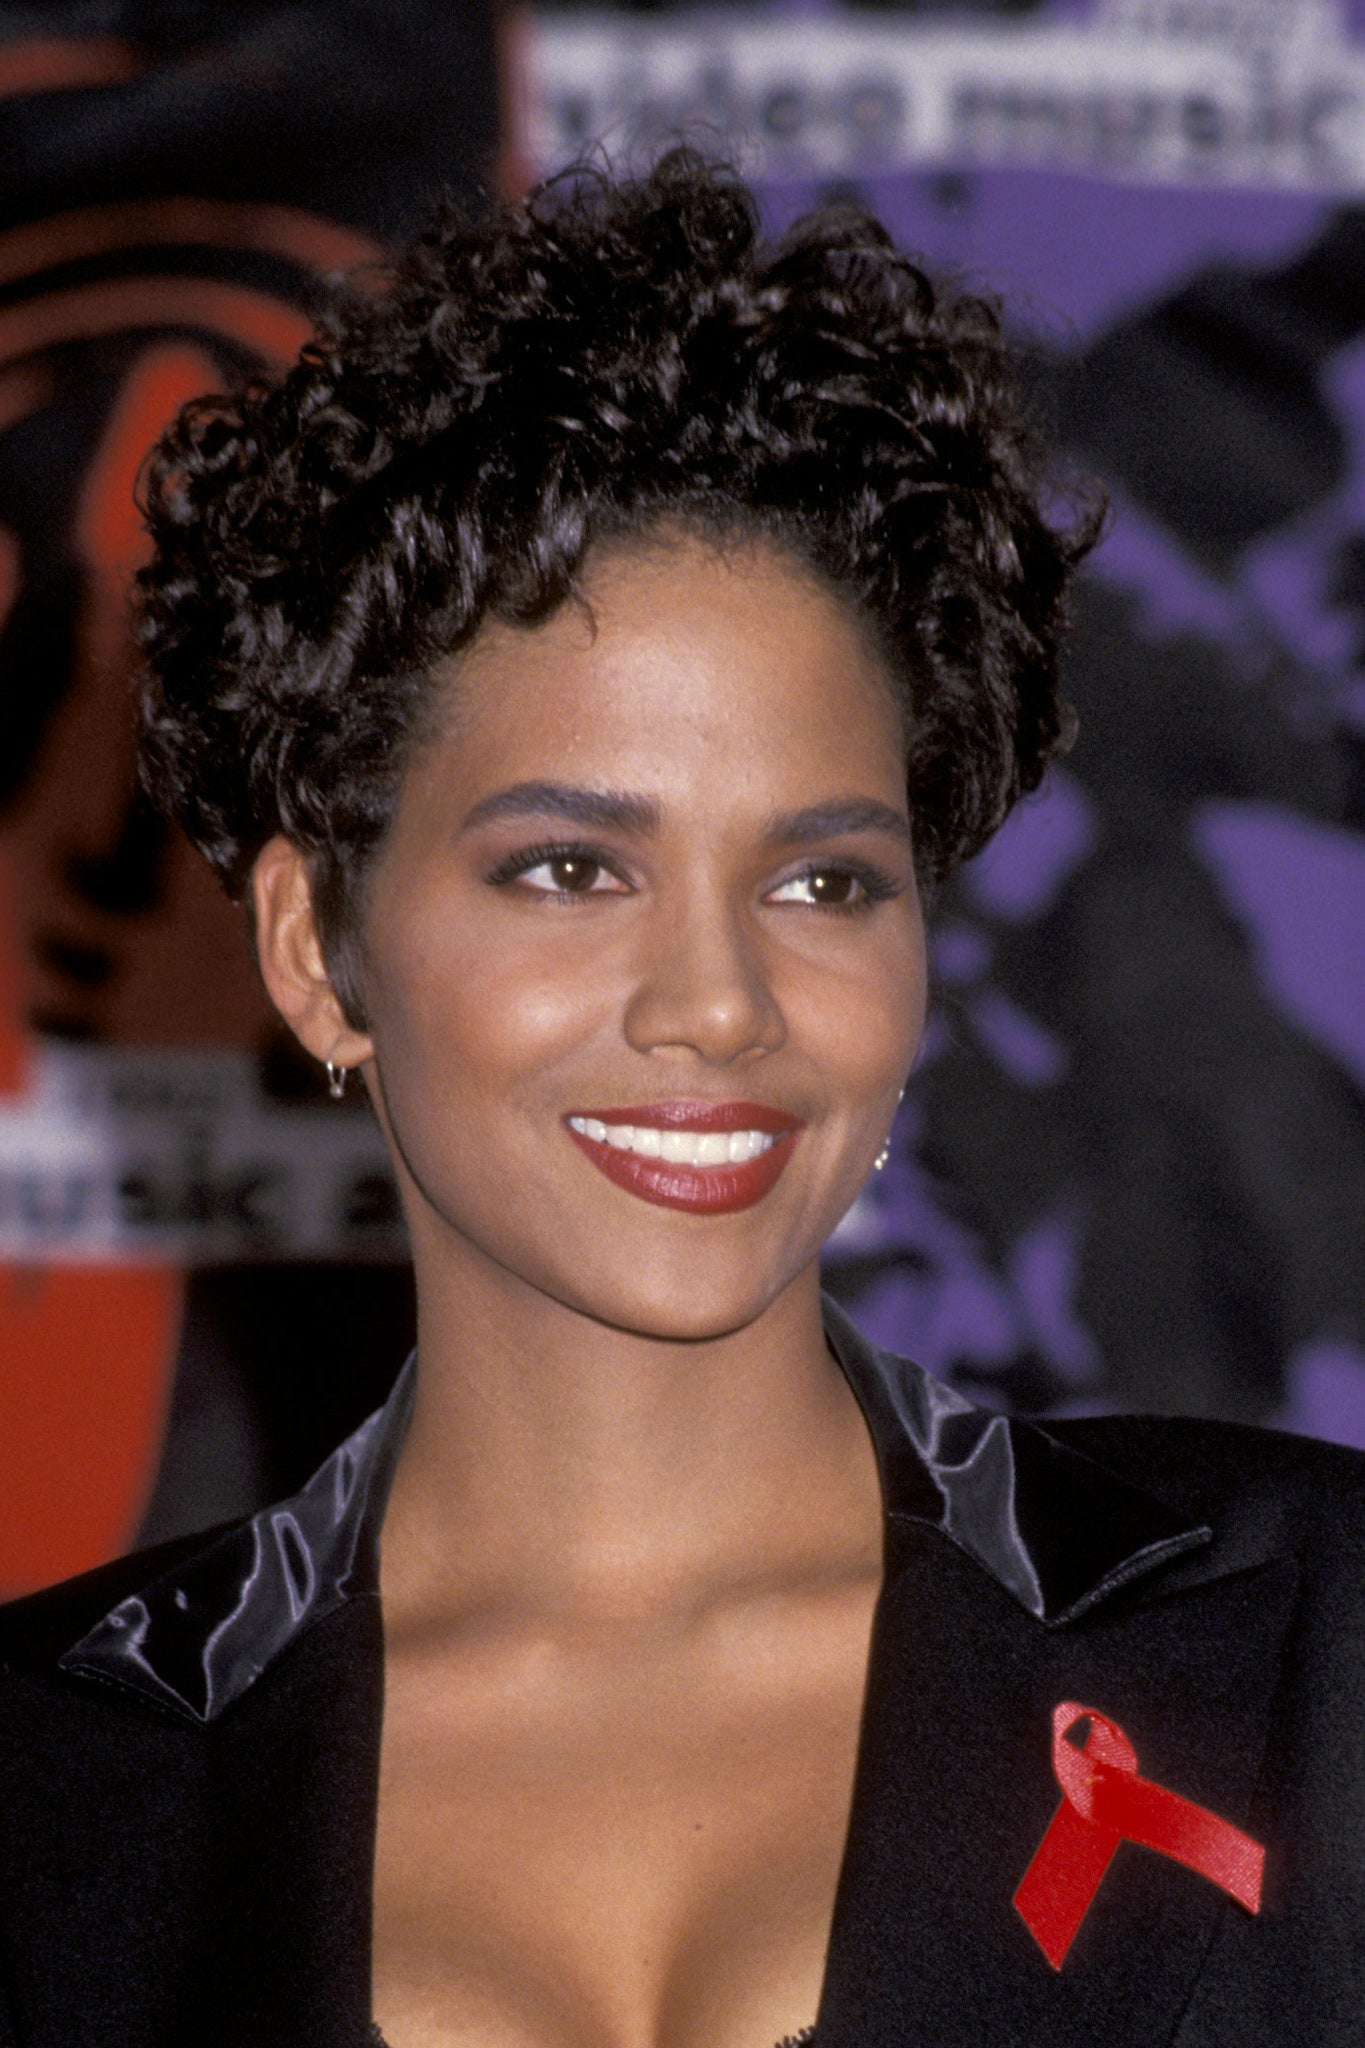 halle berry hair styles halle berry pixie hairstyles essence 5675 | 1992 GettyImages 75495851 master